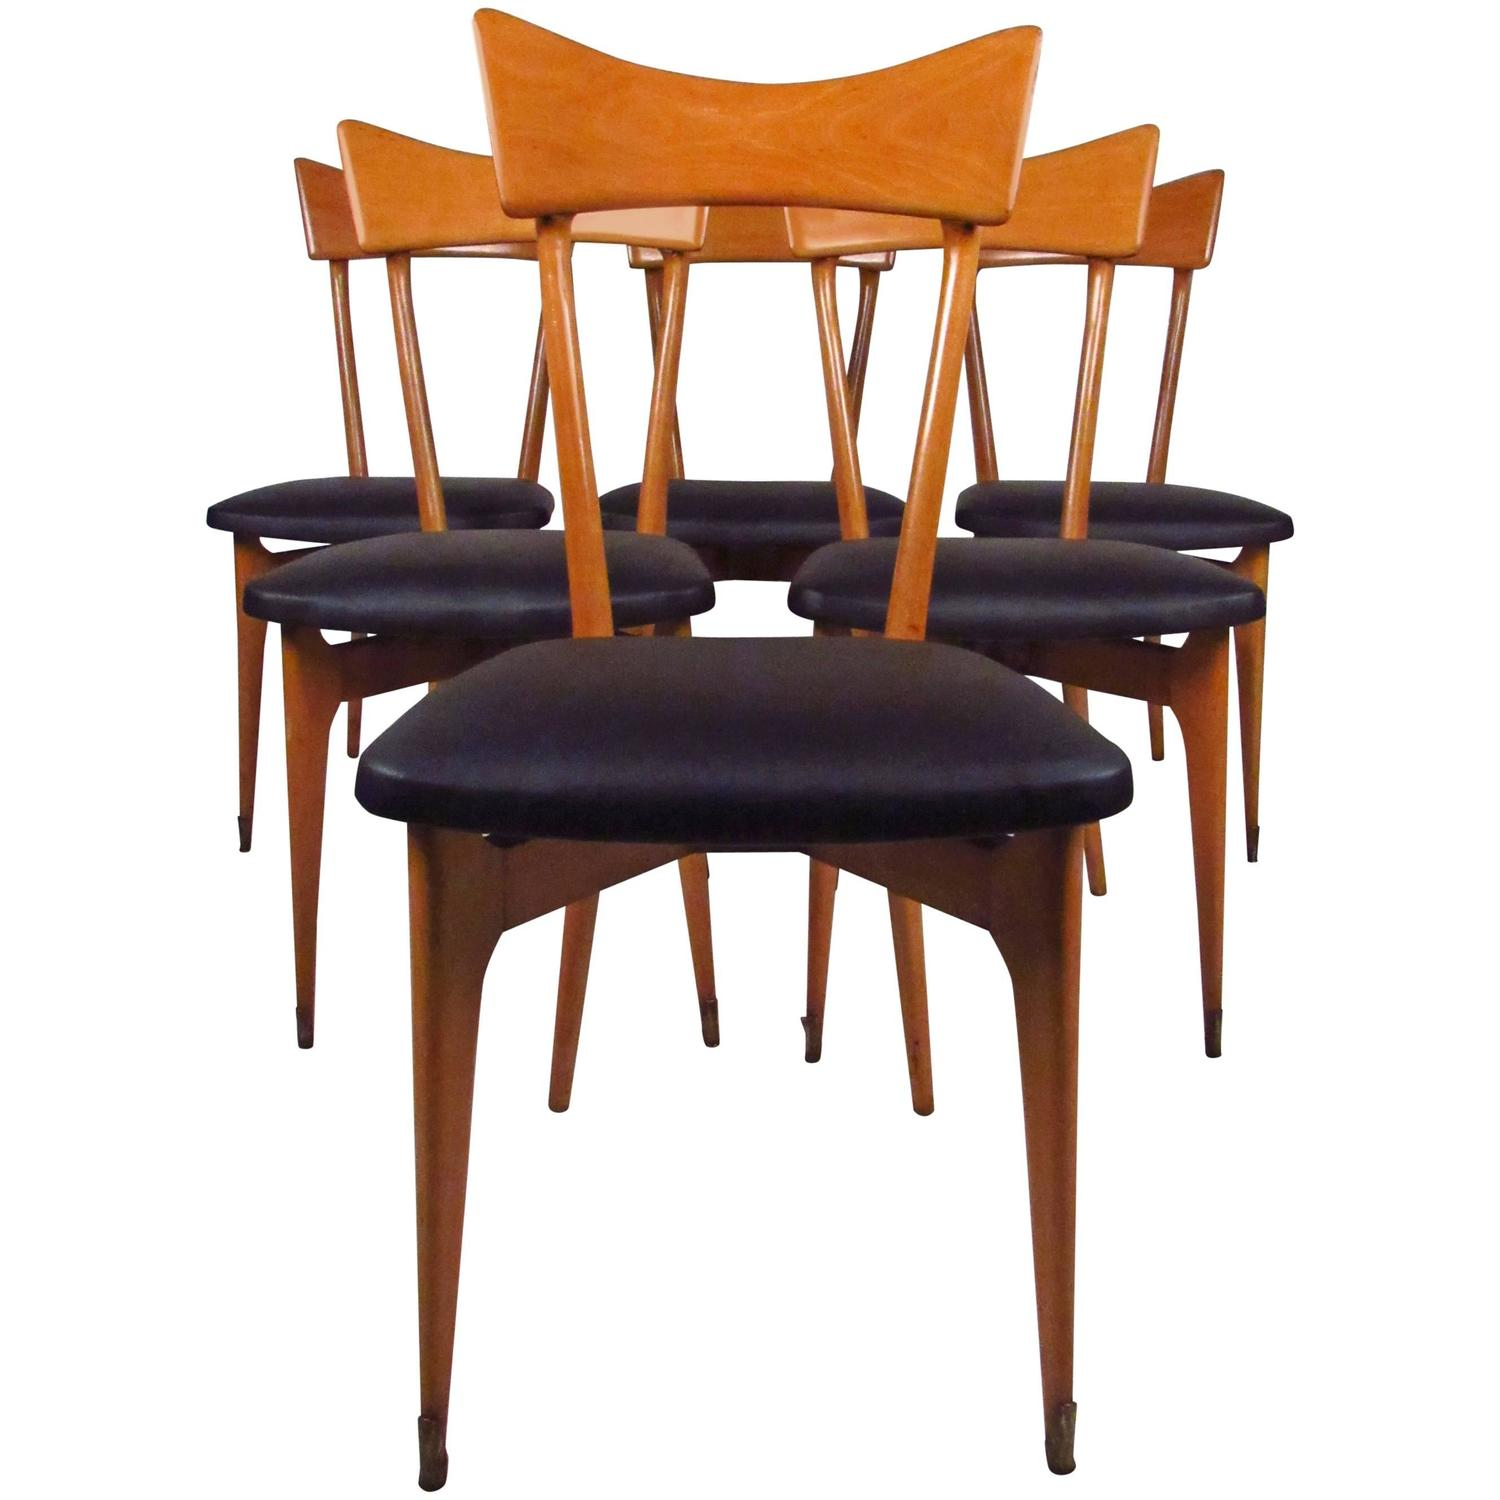 Italian Dining Chairs Set Of Mid Century Modern Italian Dining Chairs By Ico